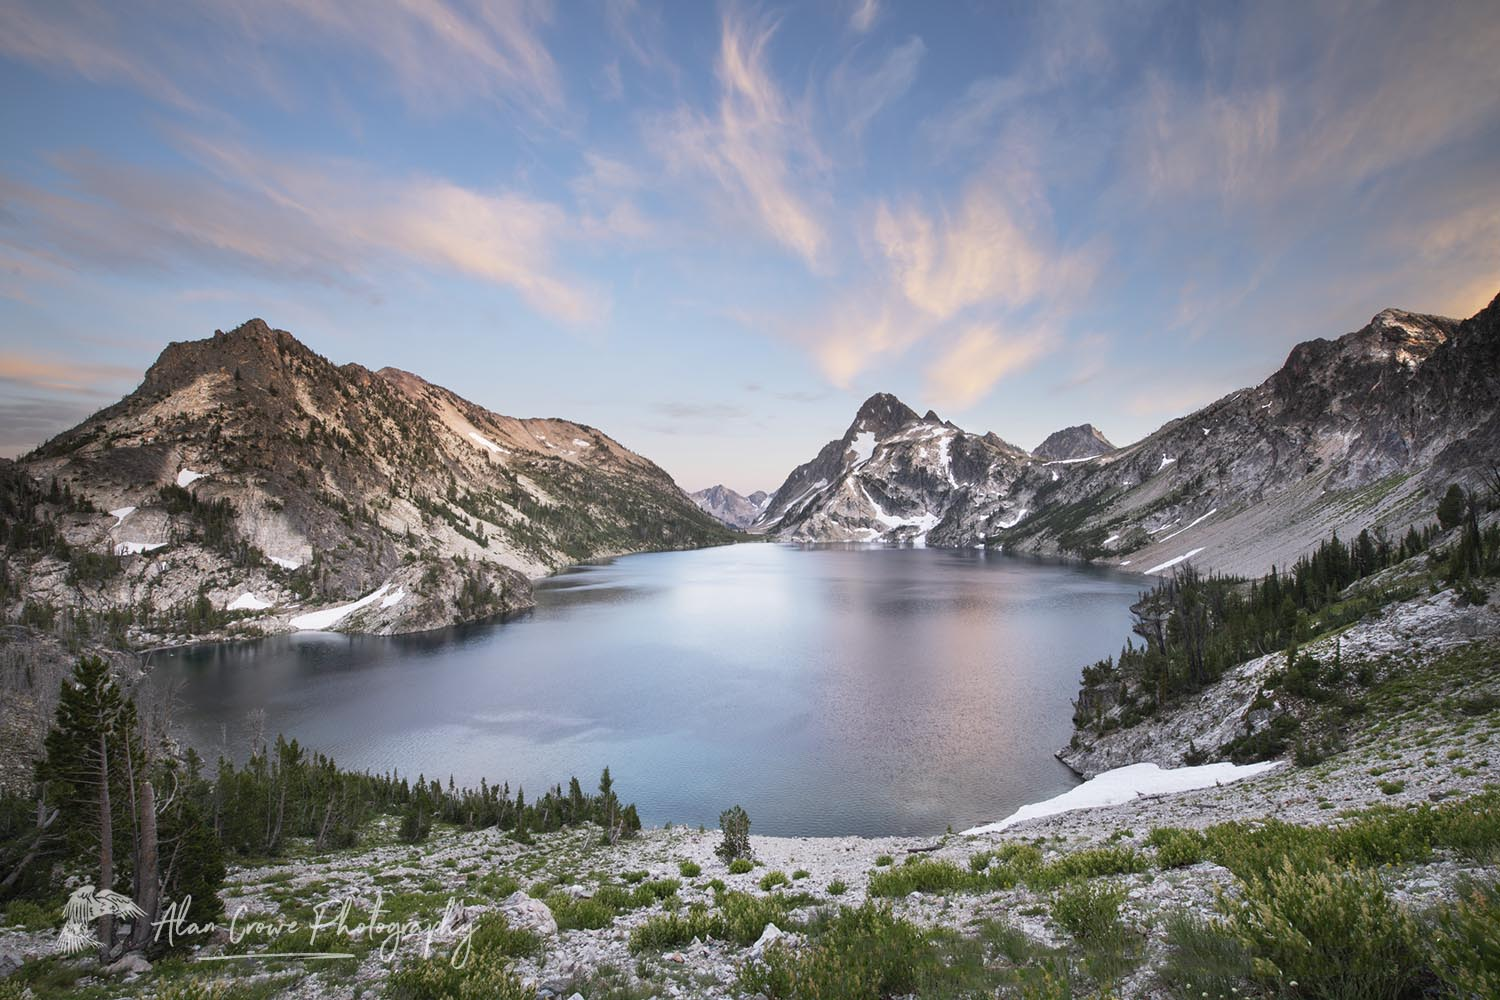 Sawtooth Lake Sawtooth Wilderness Idaho Photo Update: Sawtooth Mountains